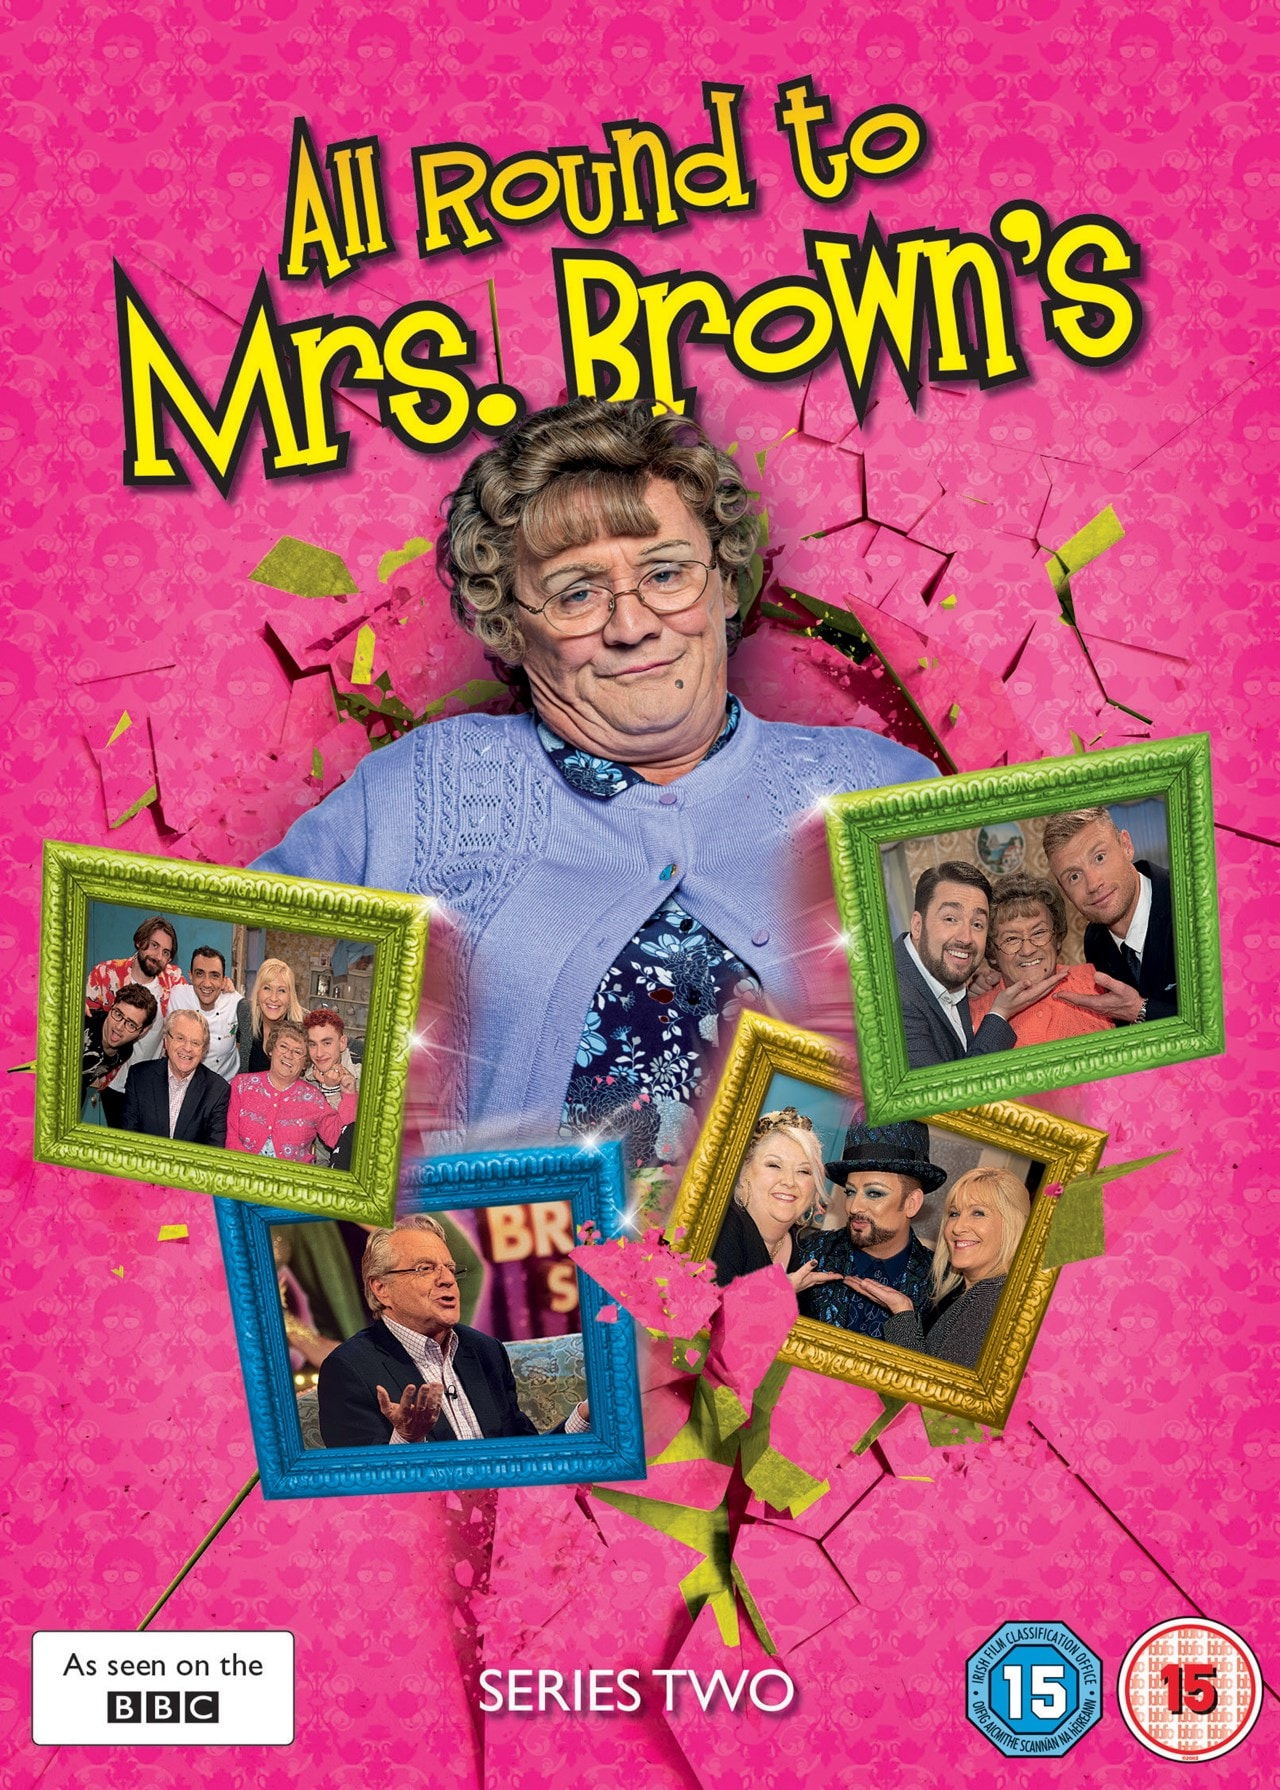 All Round to Mrs Brown's: Series 2 - 1